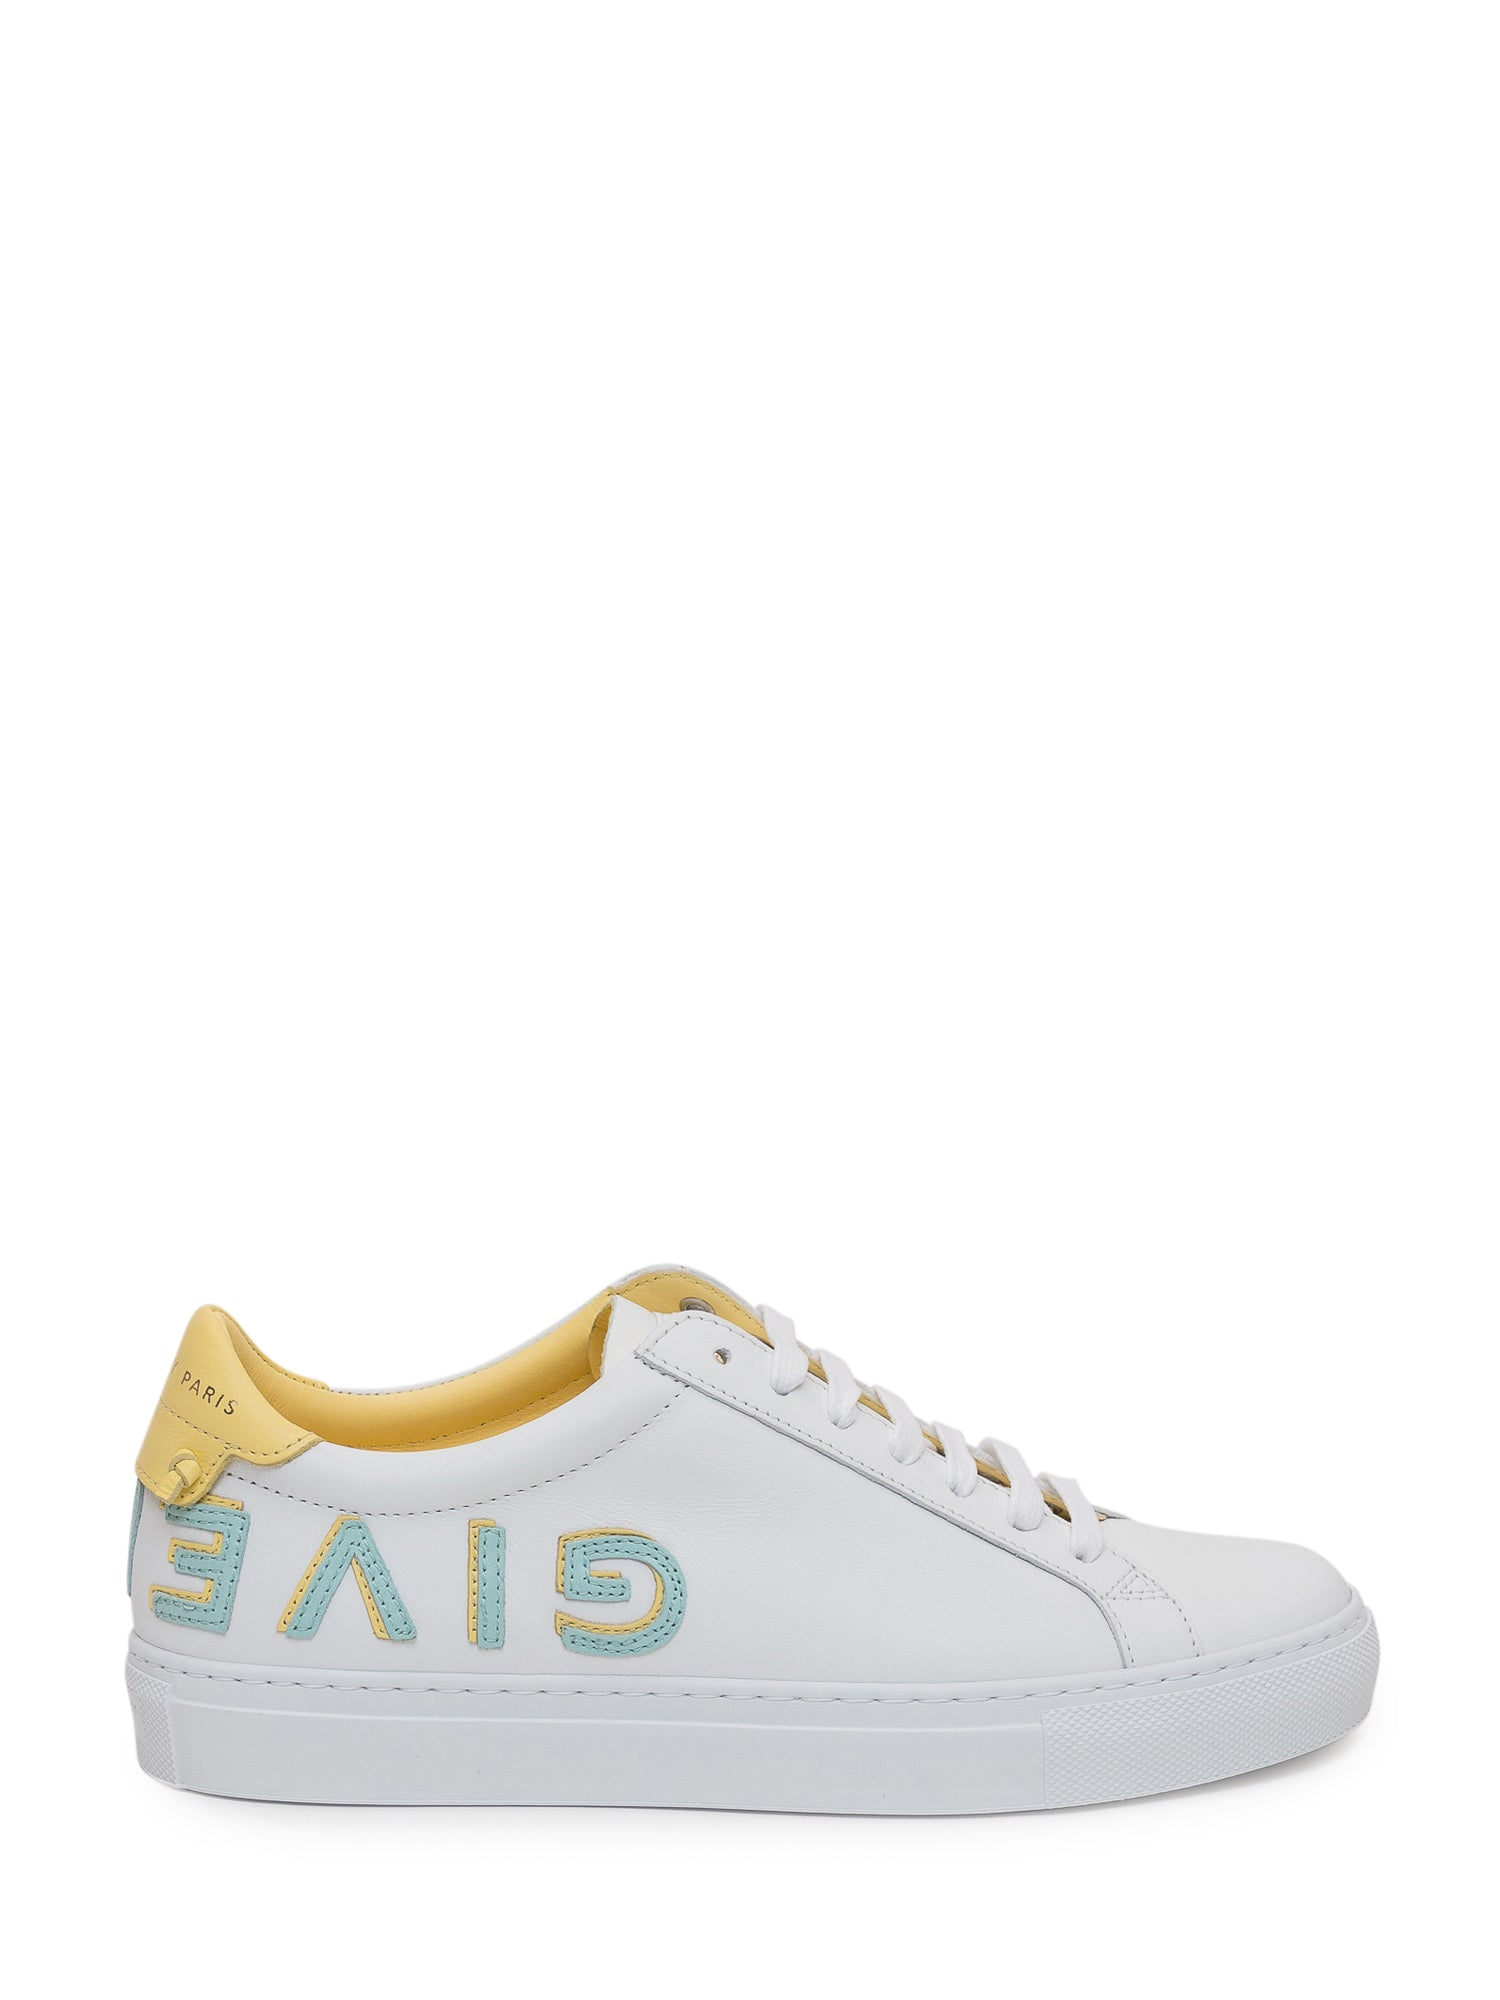 Givenchy GIVENCHY REVERSE LOGO SNEAKERS